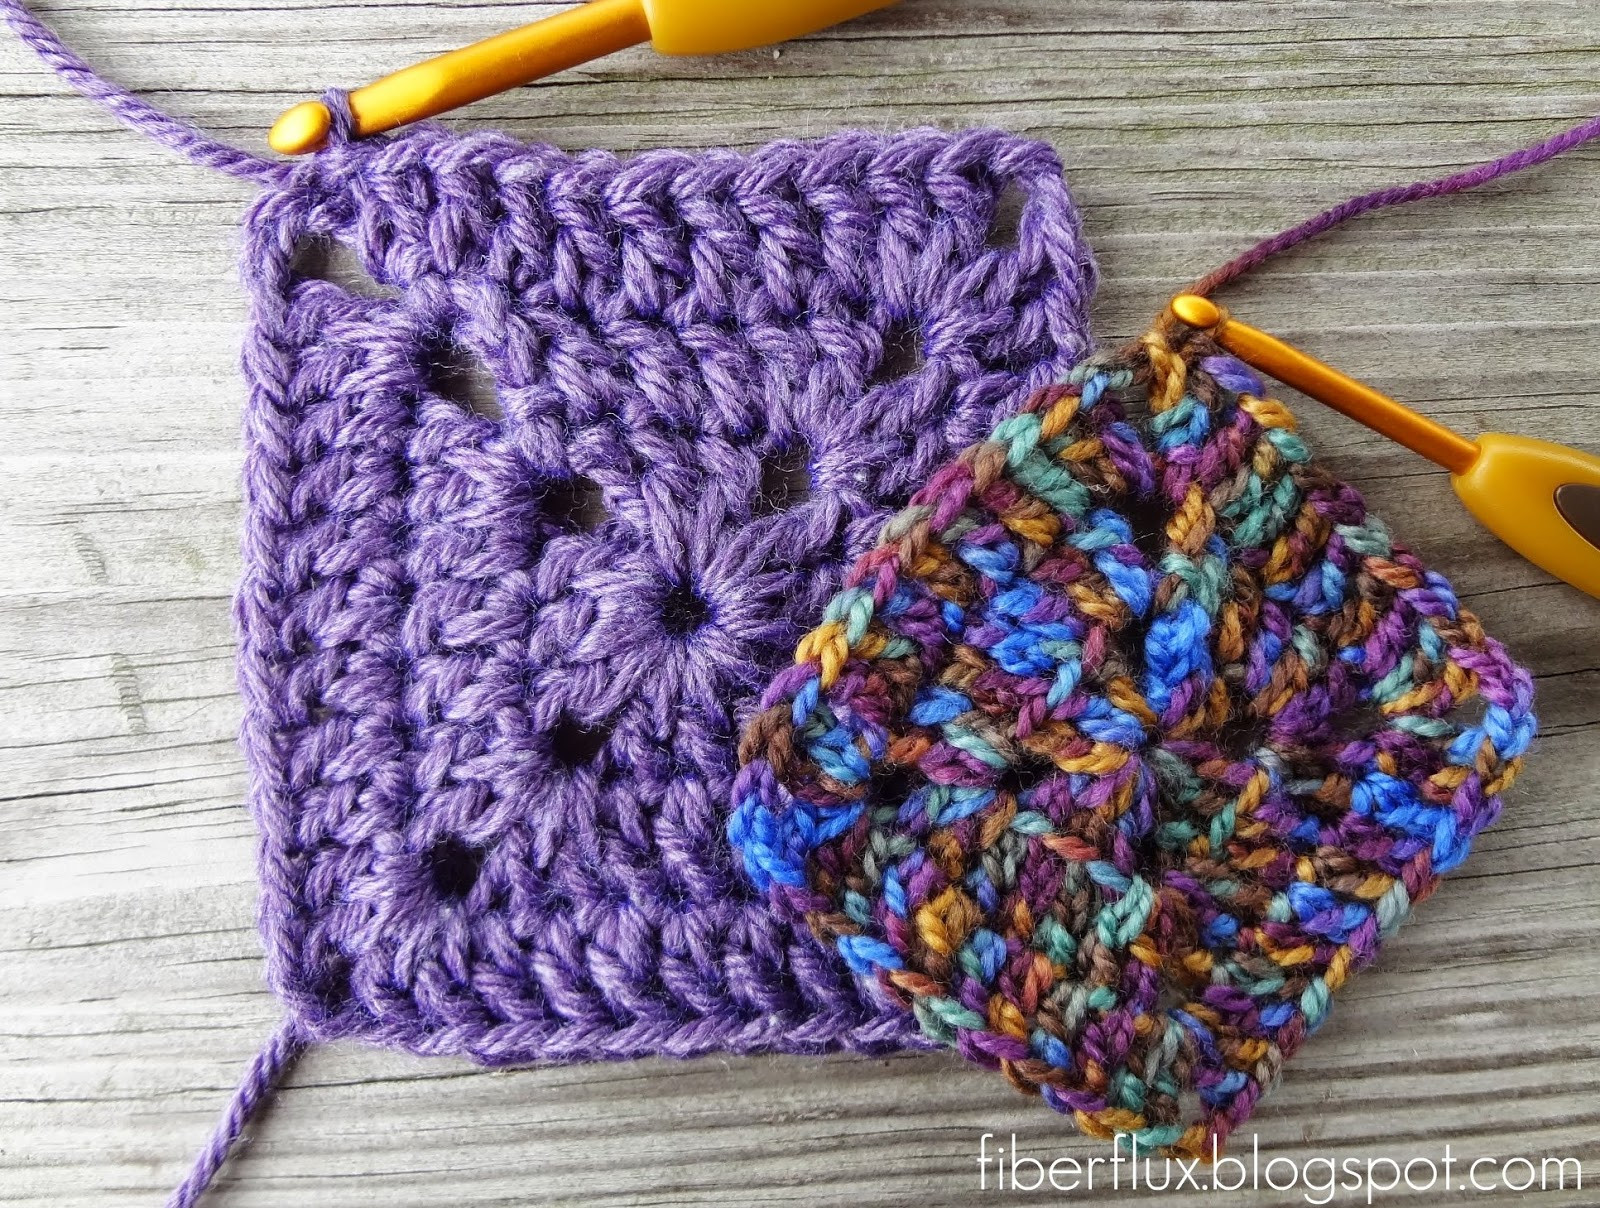 Luxury Fiber Flux How to Crochet A solid Granny Square Square Crochet Stitch Of Lovely 49 Photos Square Crochet Stitch